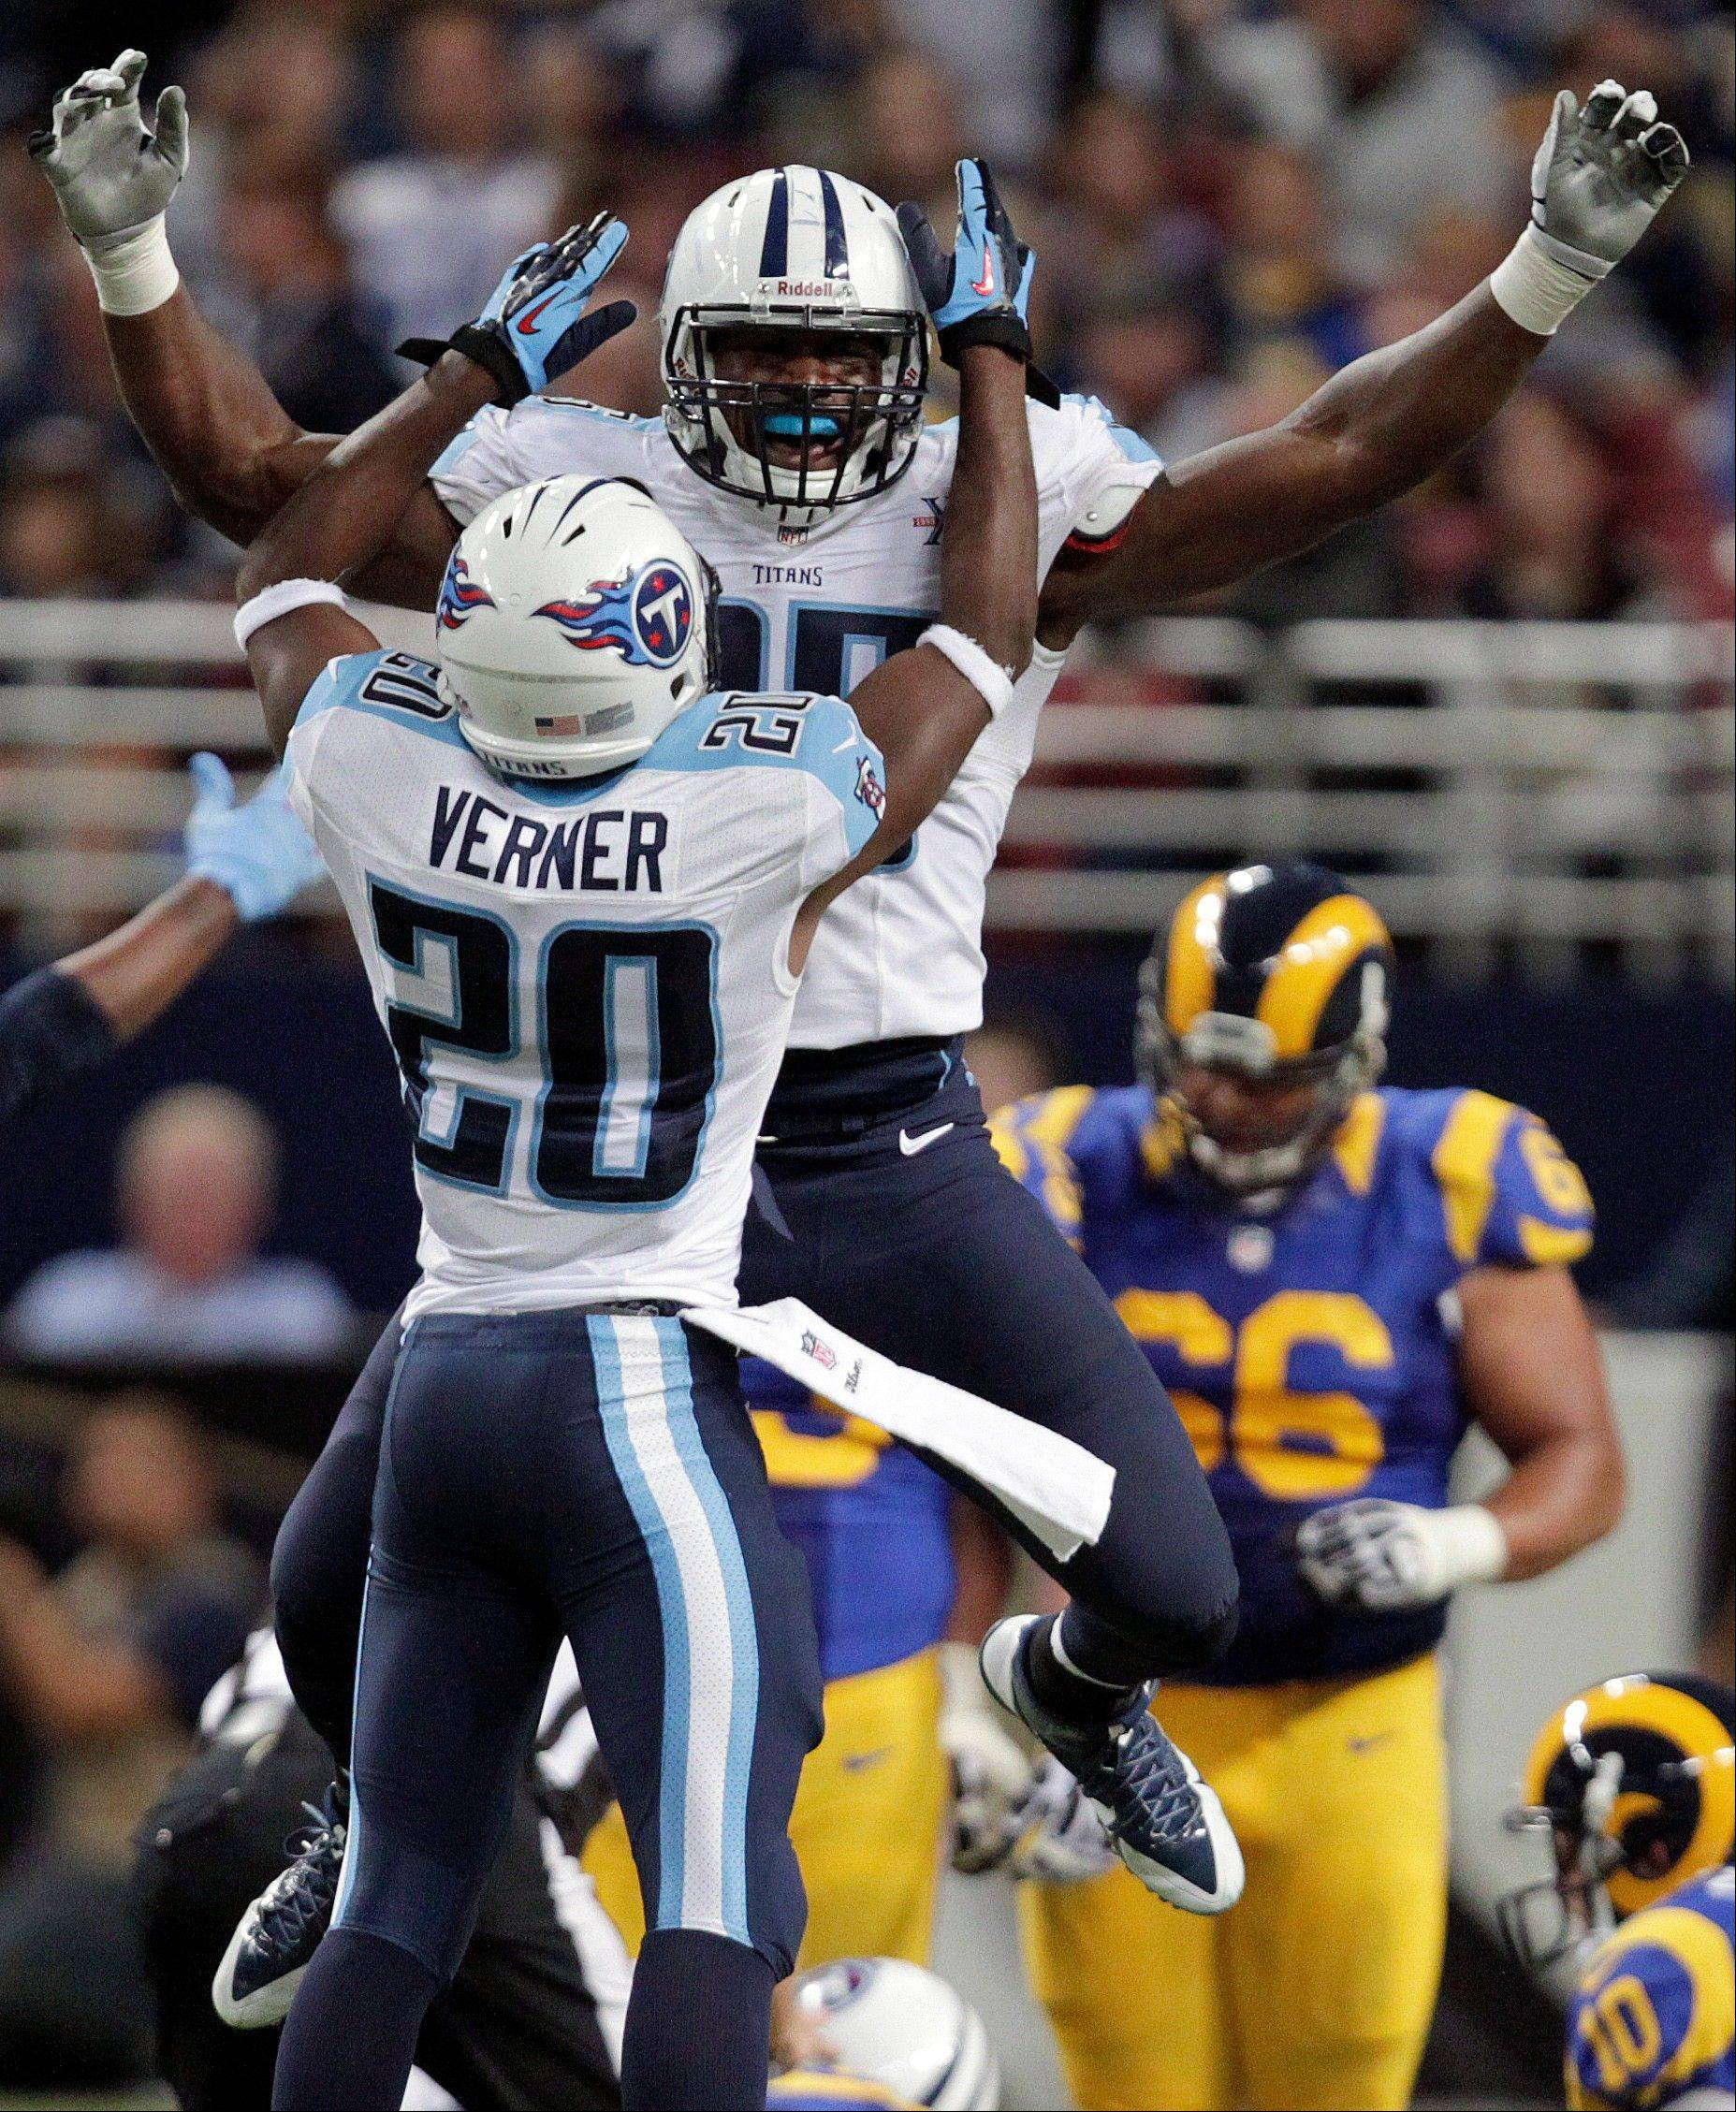 Tennessee Titans defensive end Kamerion Wimbley and teammate Alterraun Verner celebrate after a fumble by St. Louis Rams quarterback Kellen Clemens during the fourth quarter of an NFL football game Sunday, Nov. 3, 2013, in St. Louis.